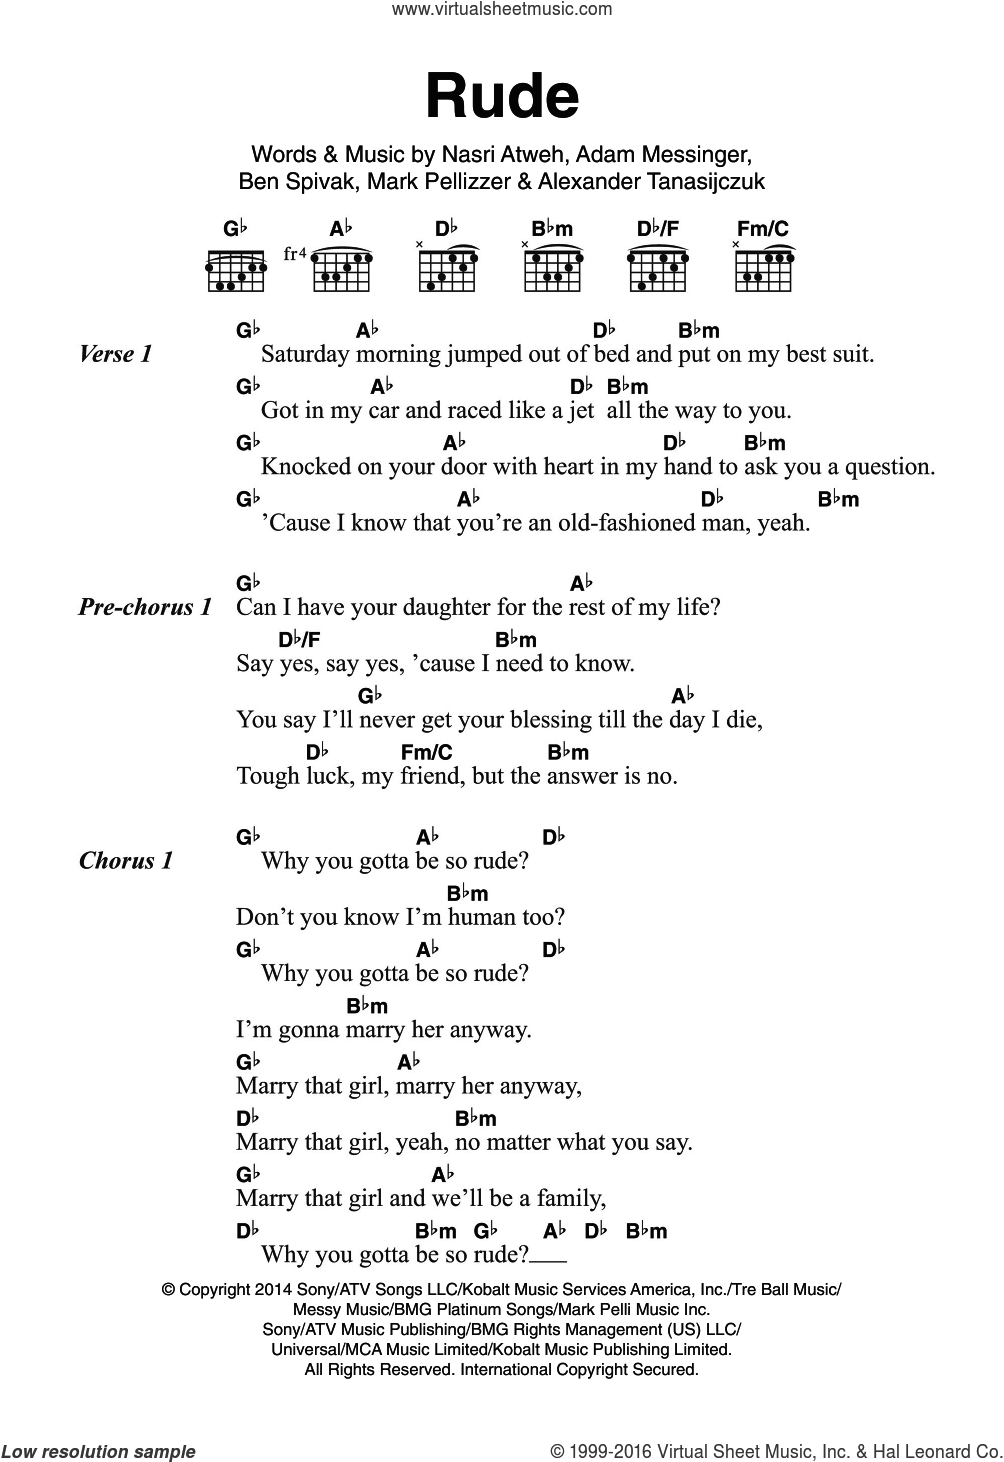 First Day Of My Life Chords Magic Rude Sheet Music For Guitar Chords Pdf